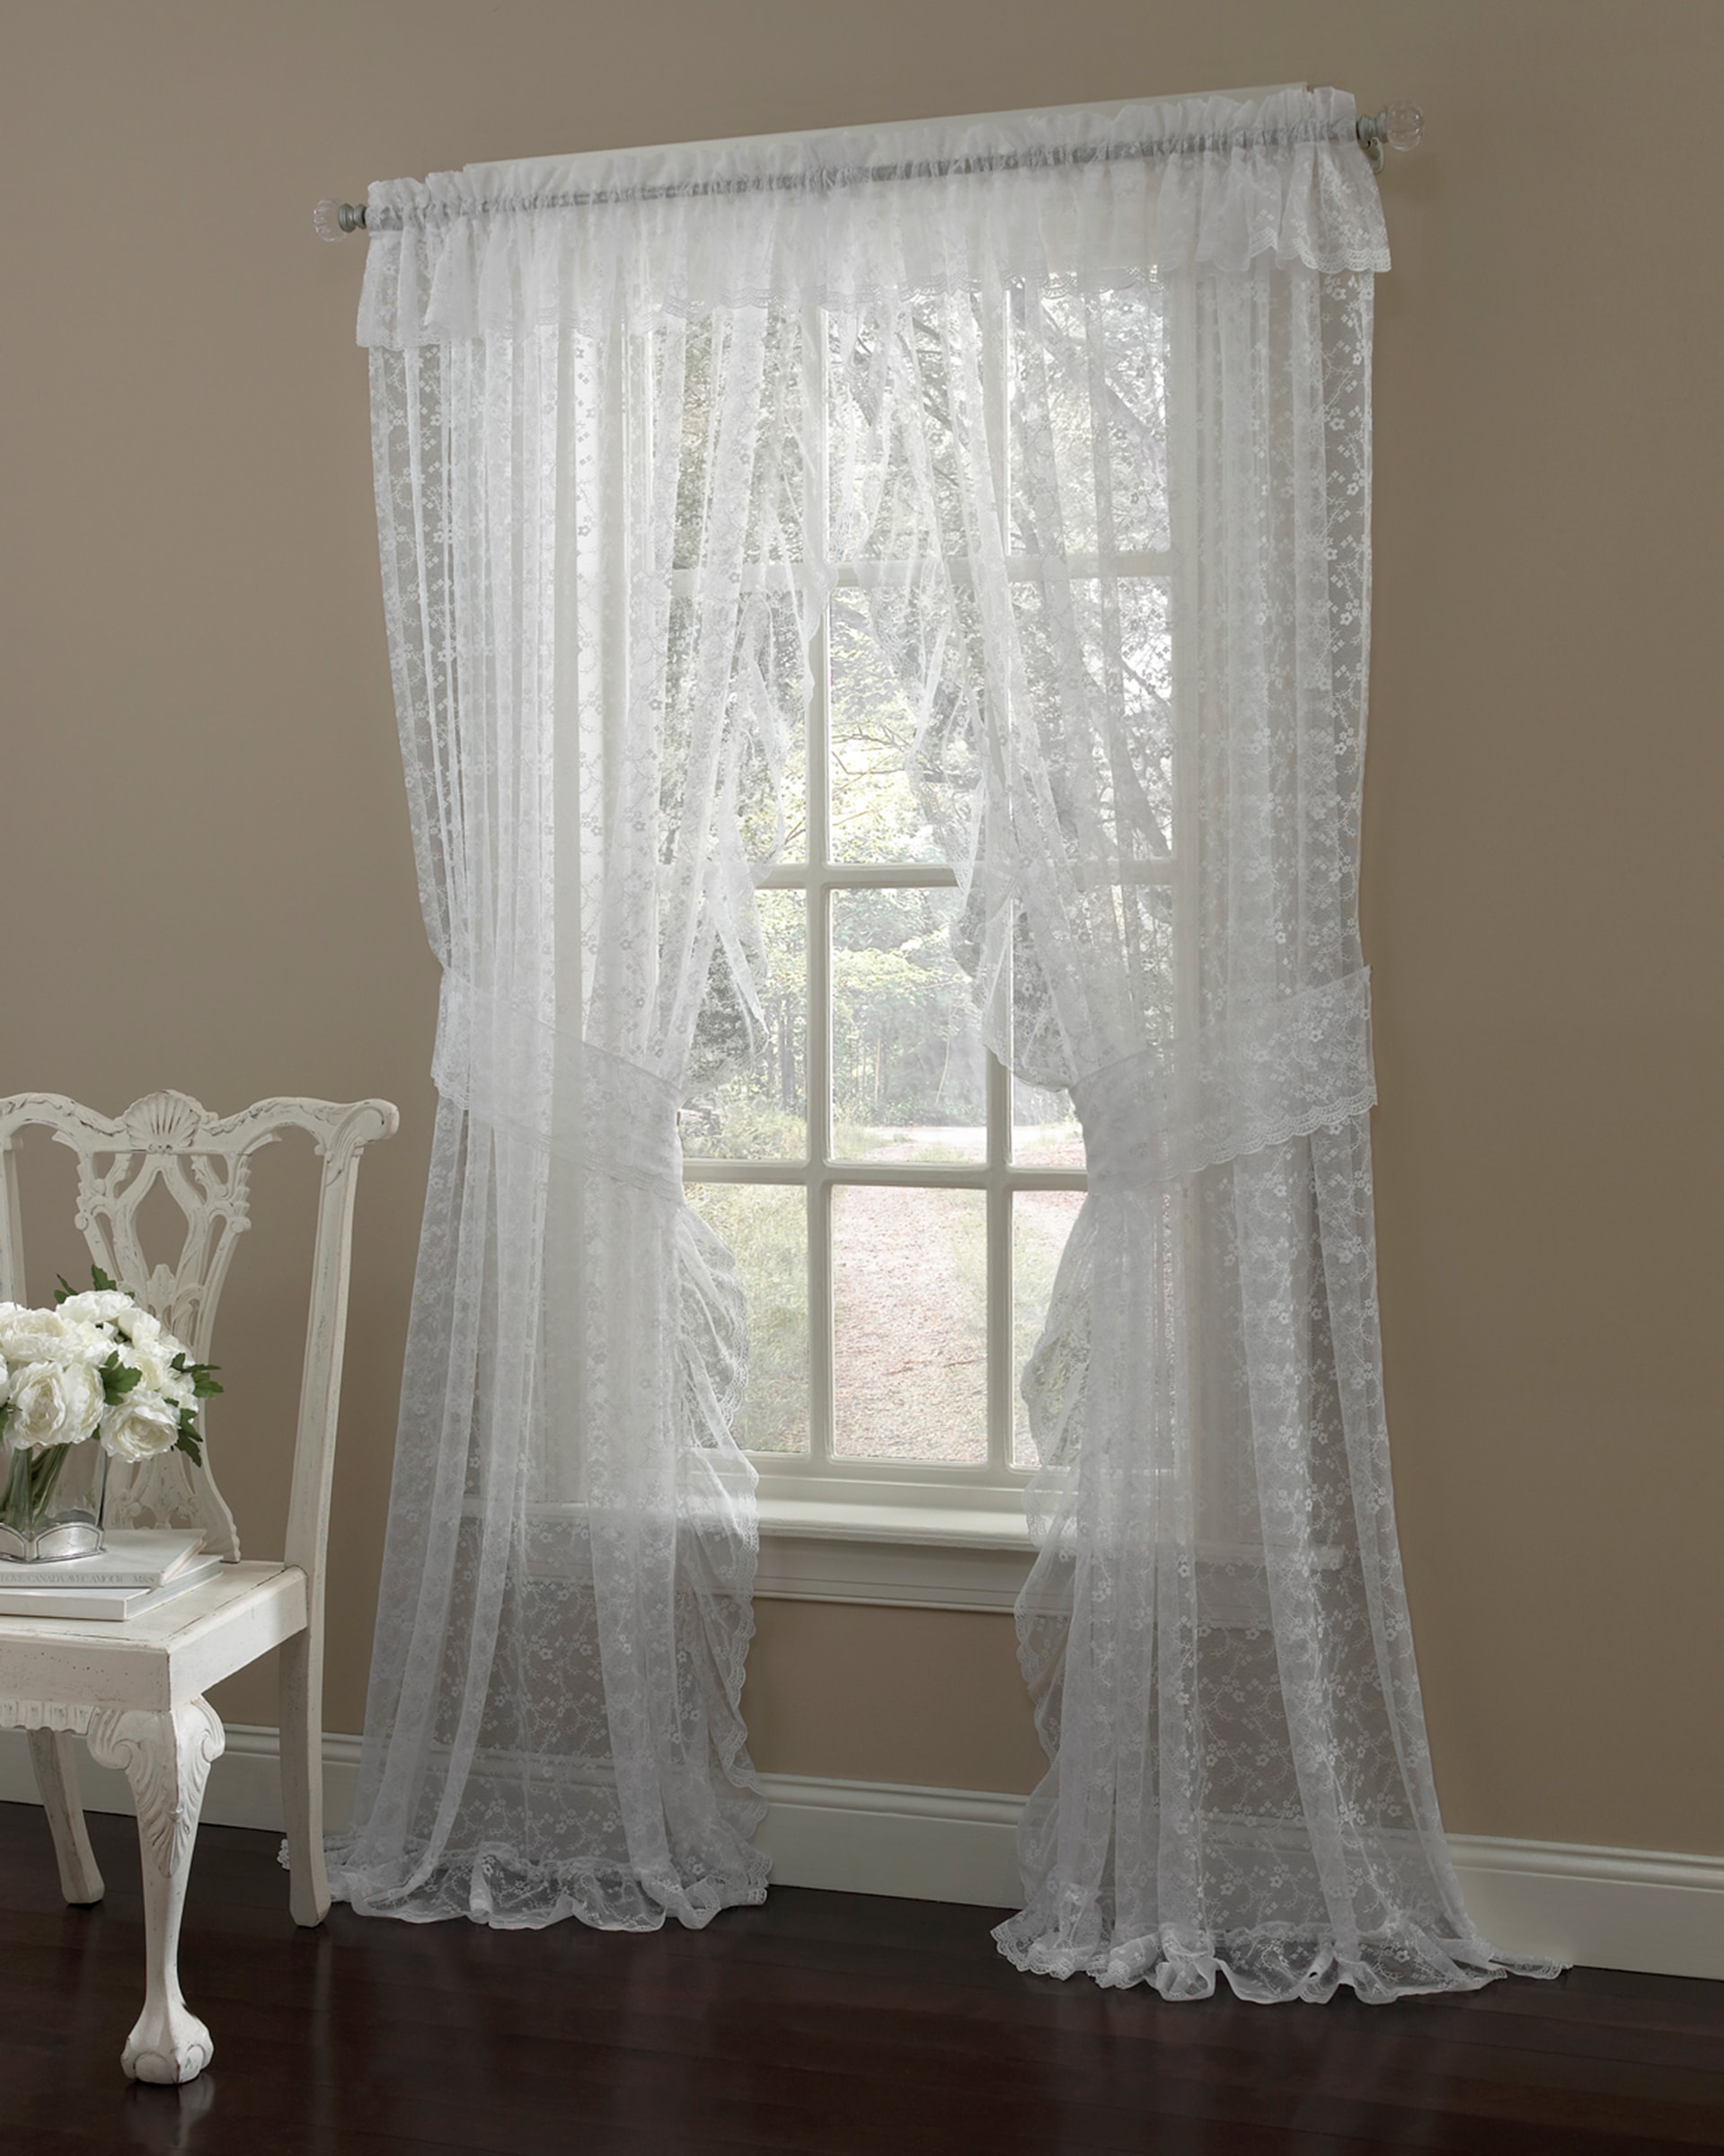 Priscilla Panel Featured with Valance